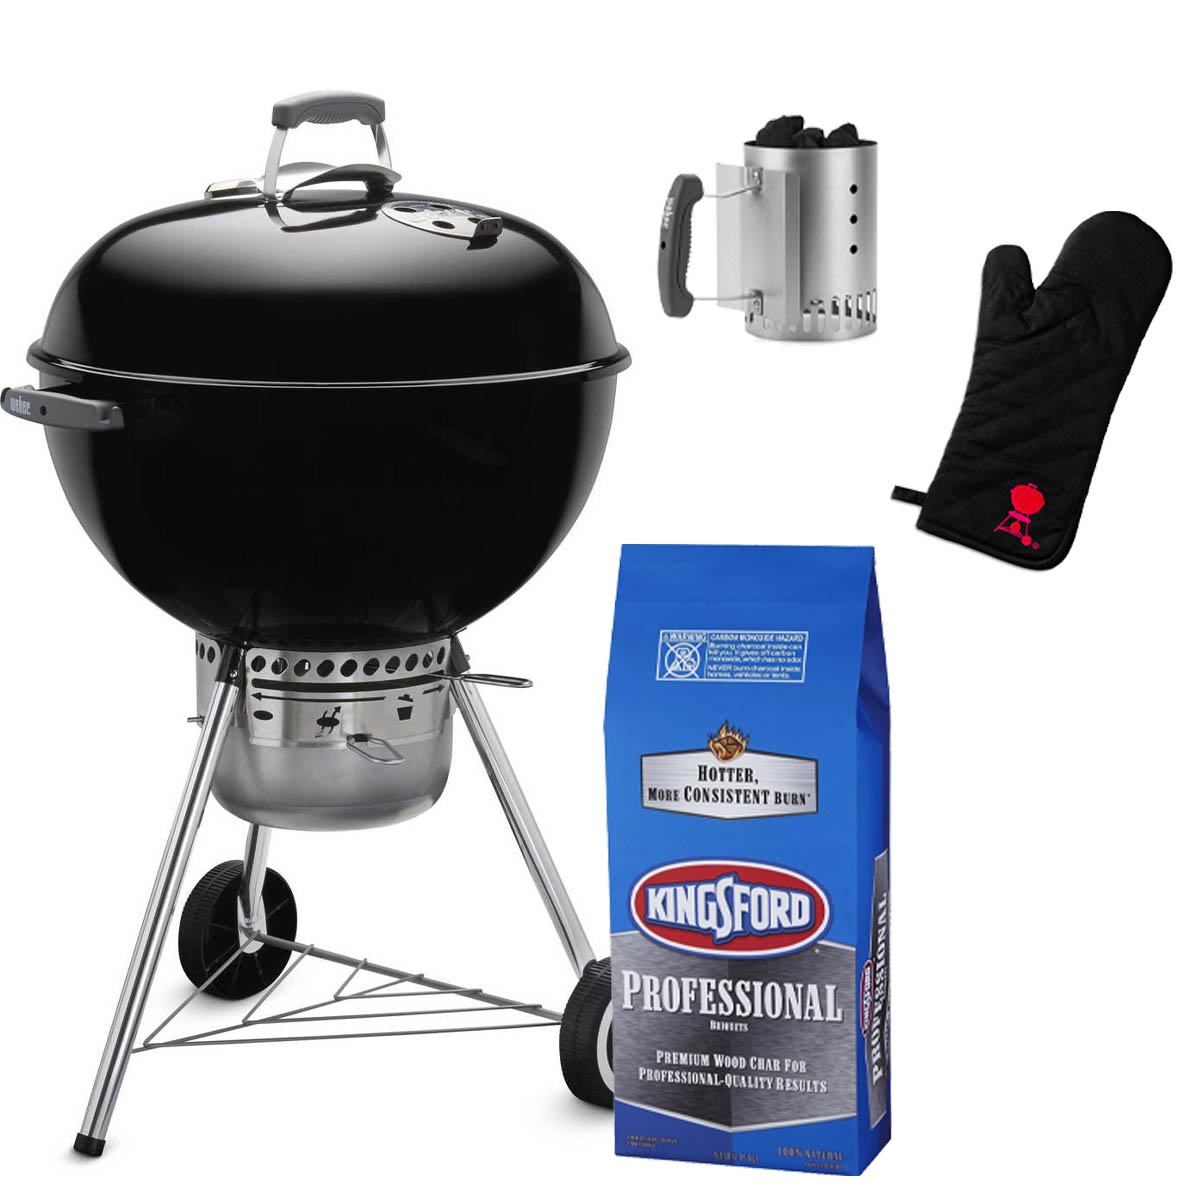 """Summer Grilling Basket - Everything you need for the perfect summer cookout! This basket includes a classic 22"""" Weber Charcoal Grill (Retail Value: $165.00), along with a bag of Kingsford charcoal, Weber chimney starter, and even a mitt in case things get a little hot. You can practically hear the sizzle now!"""